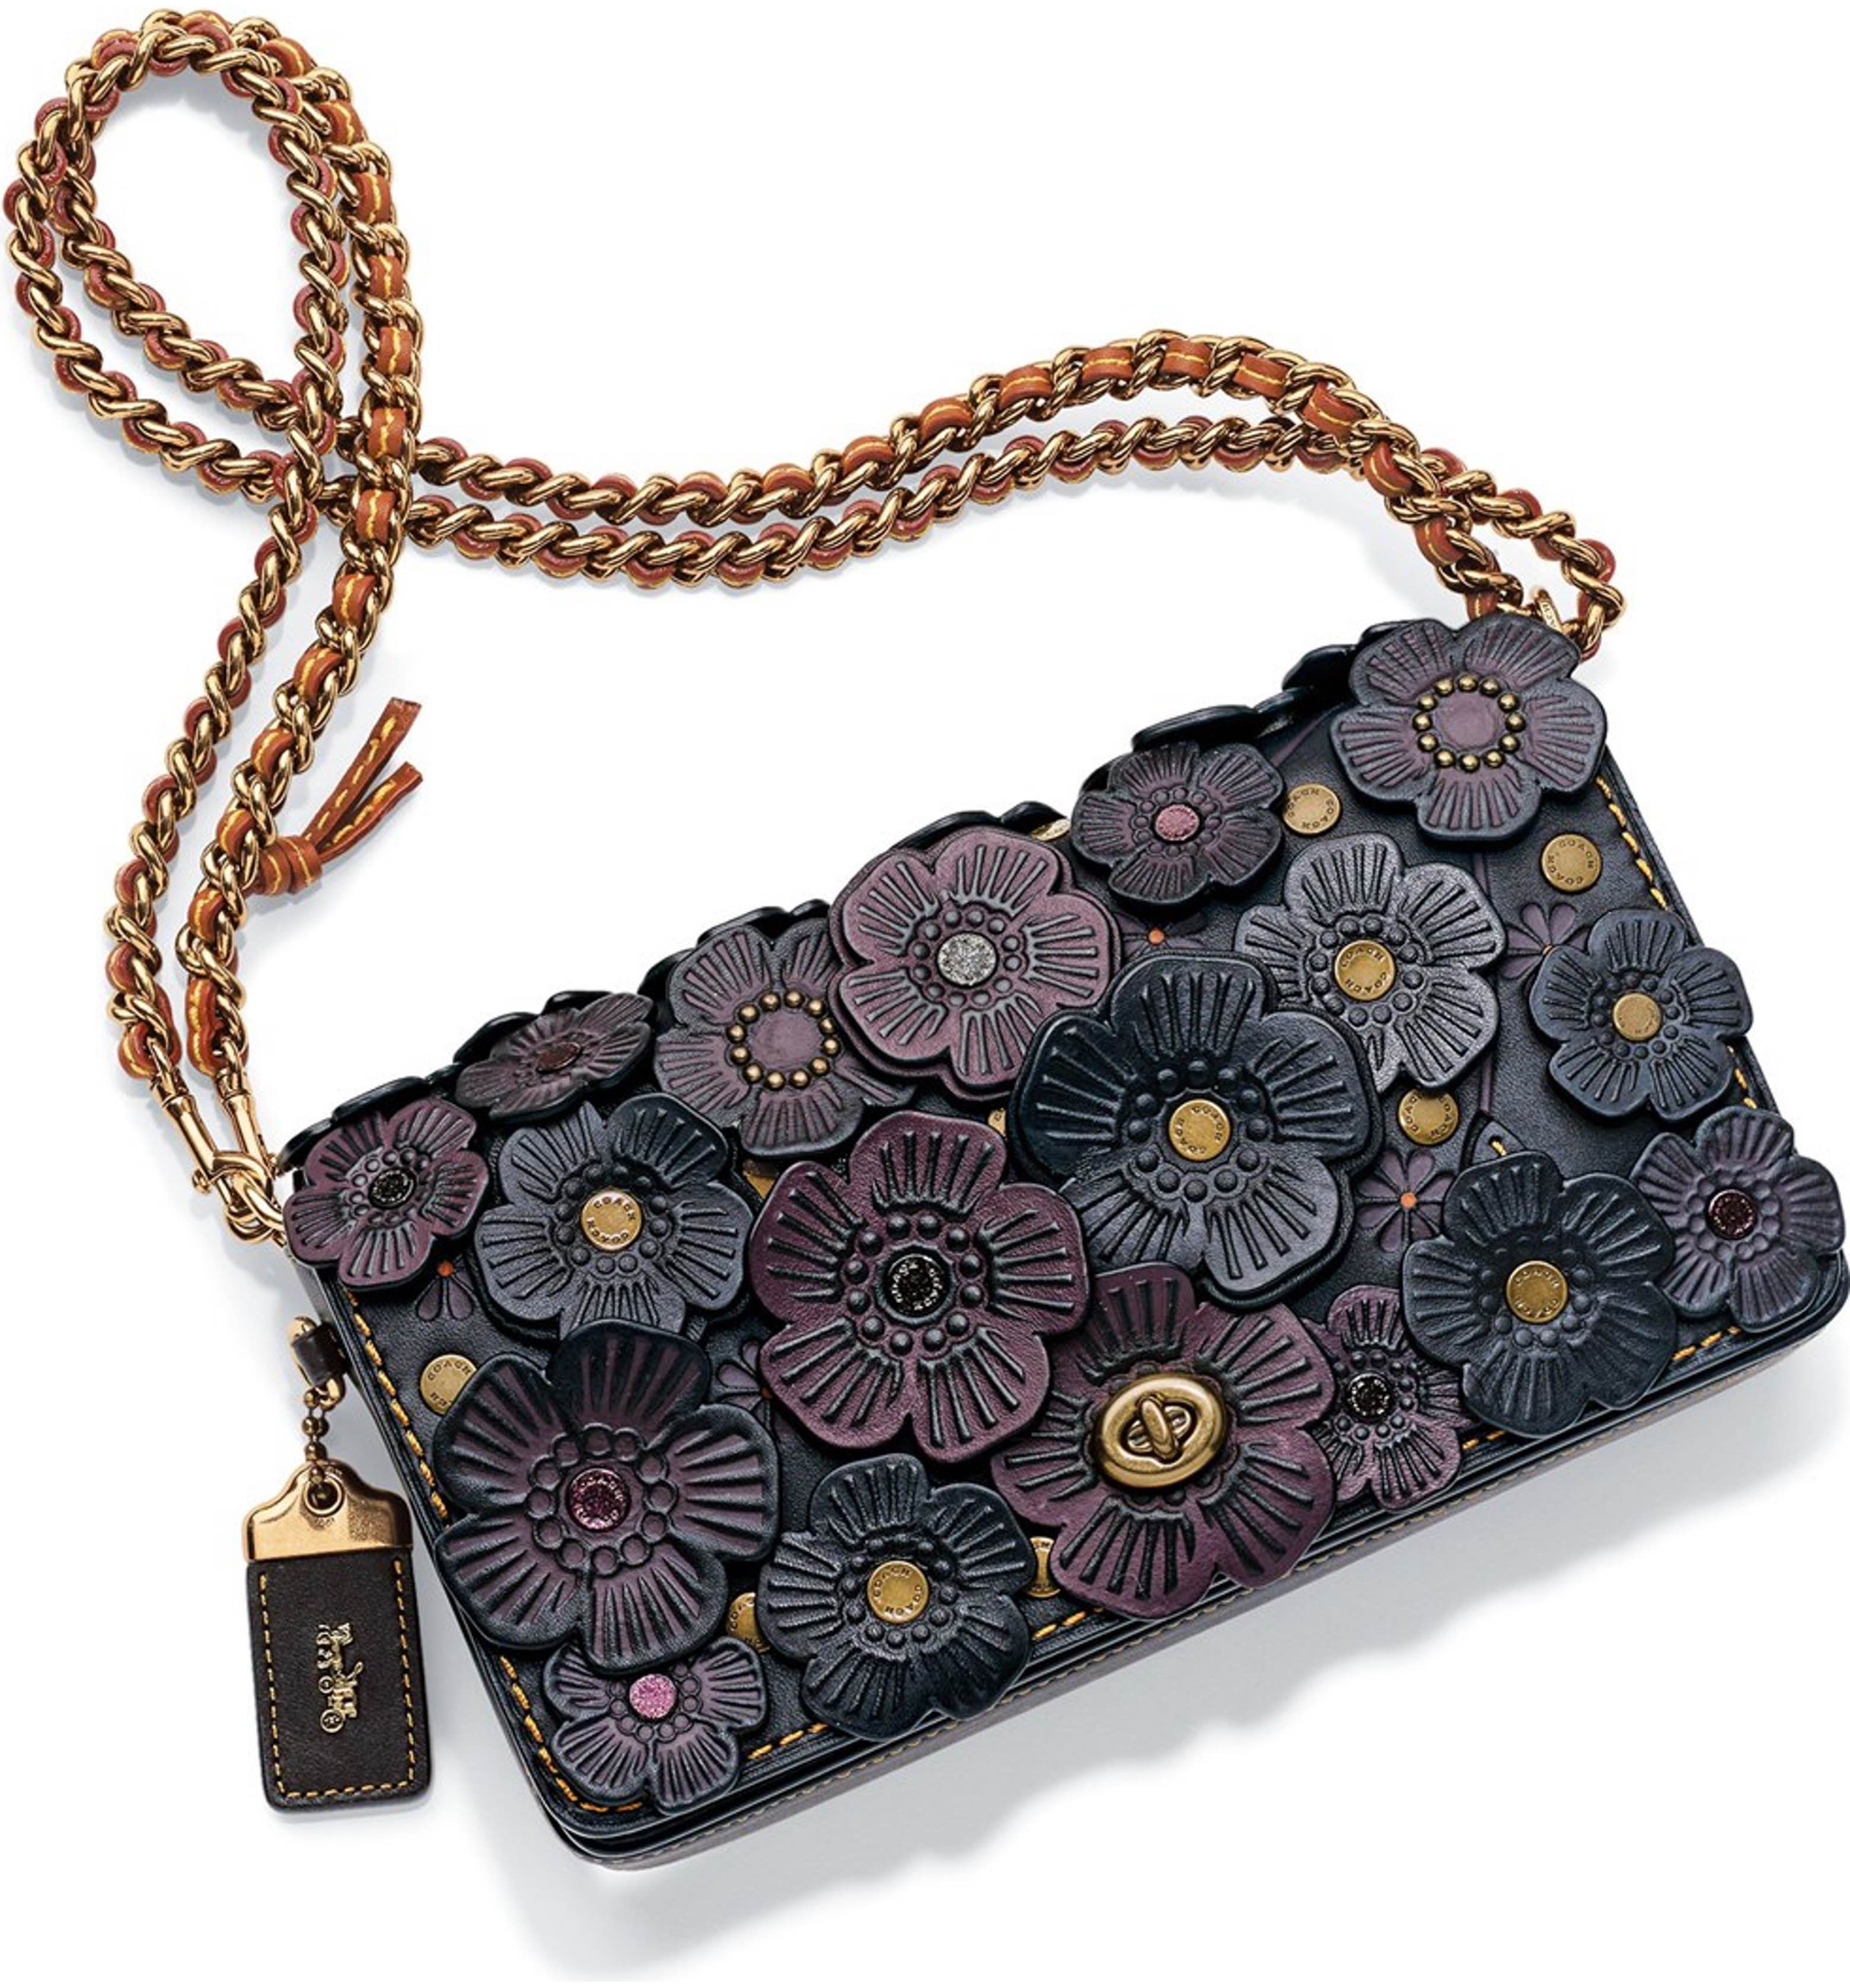 Coach 1941 Dinky Flower Applique Leather Crossbody Bag Leather